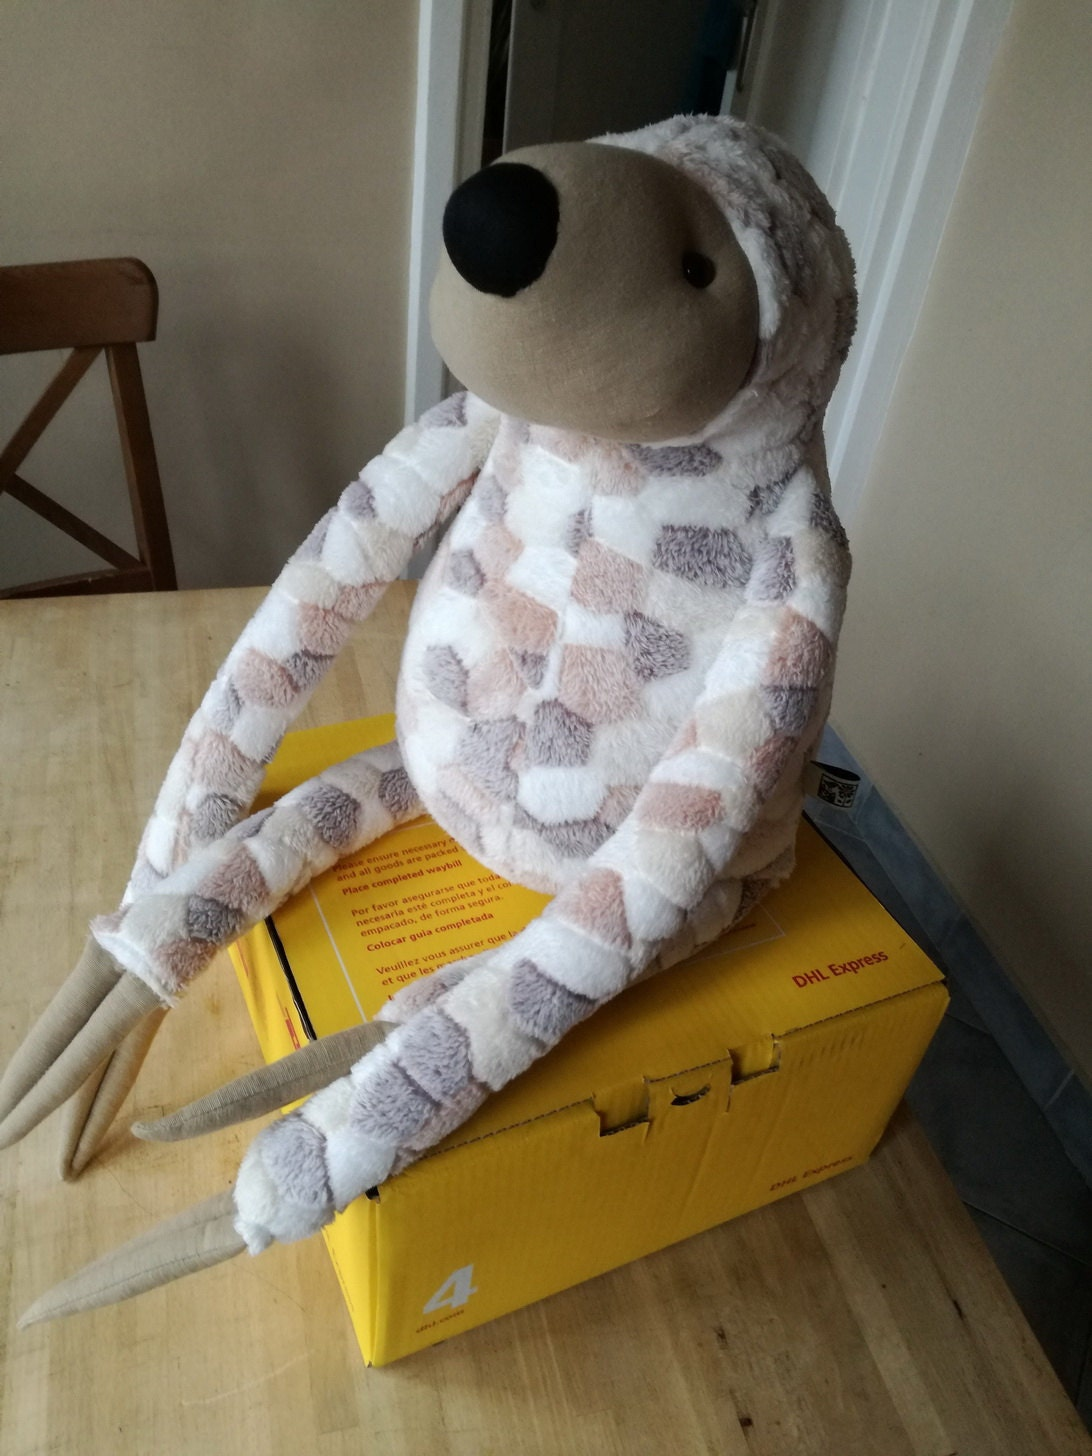 XXL Sloth sitting on a >2kg DHL box (box #4)